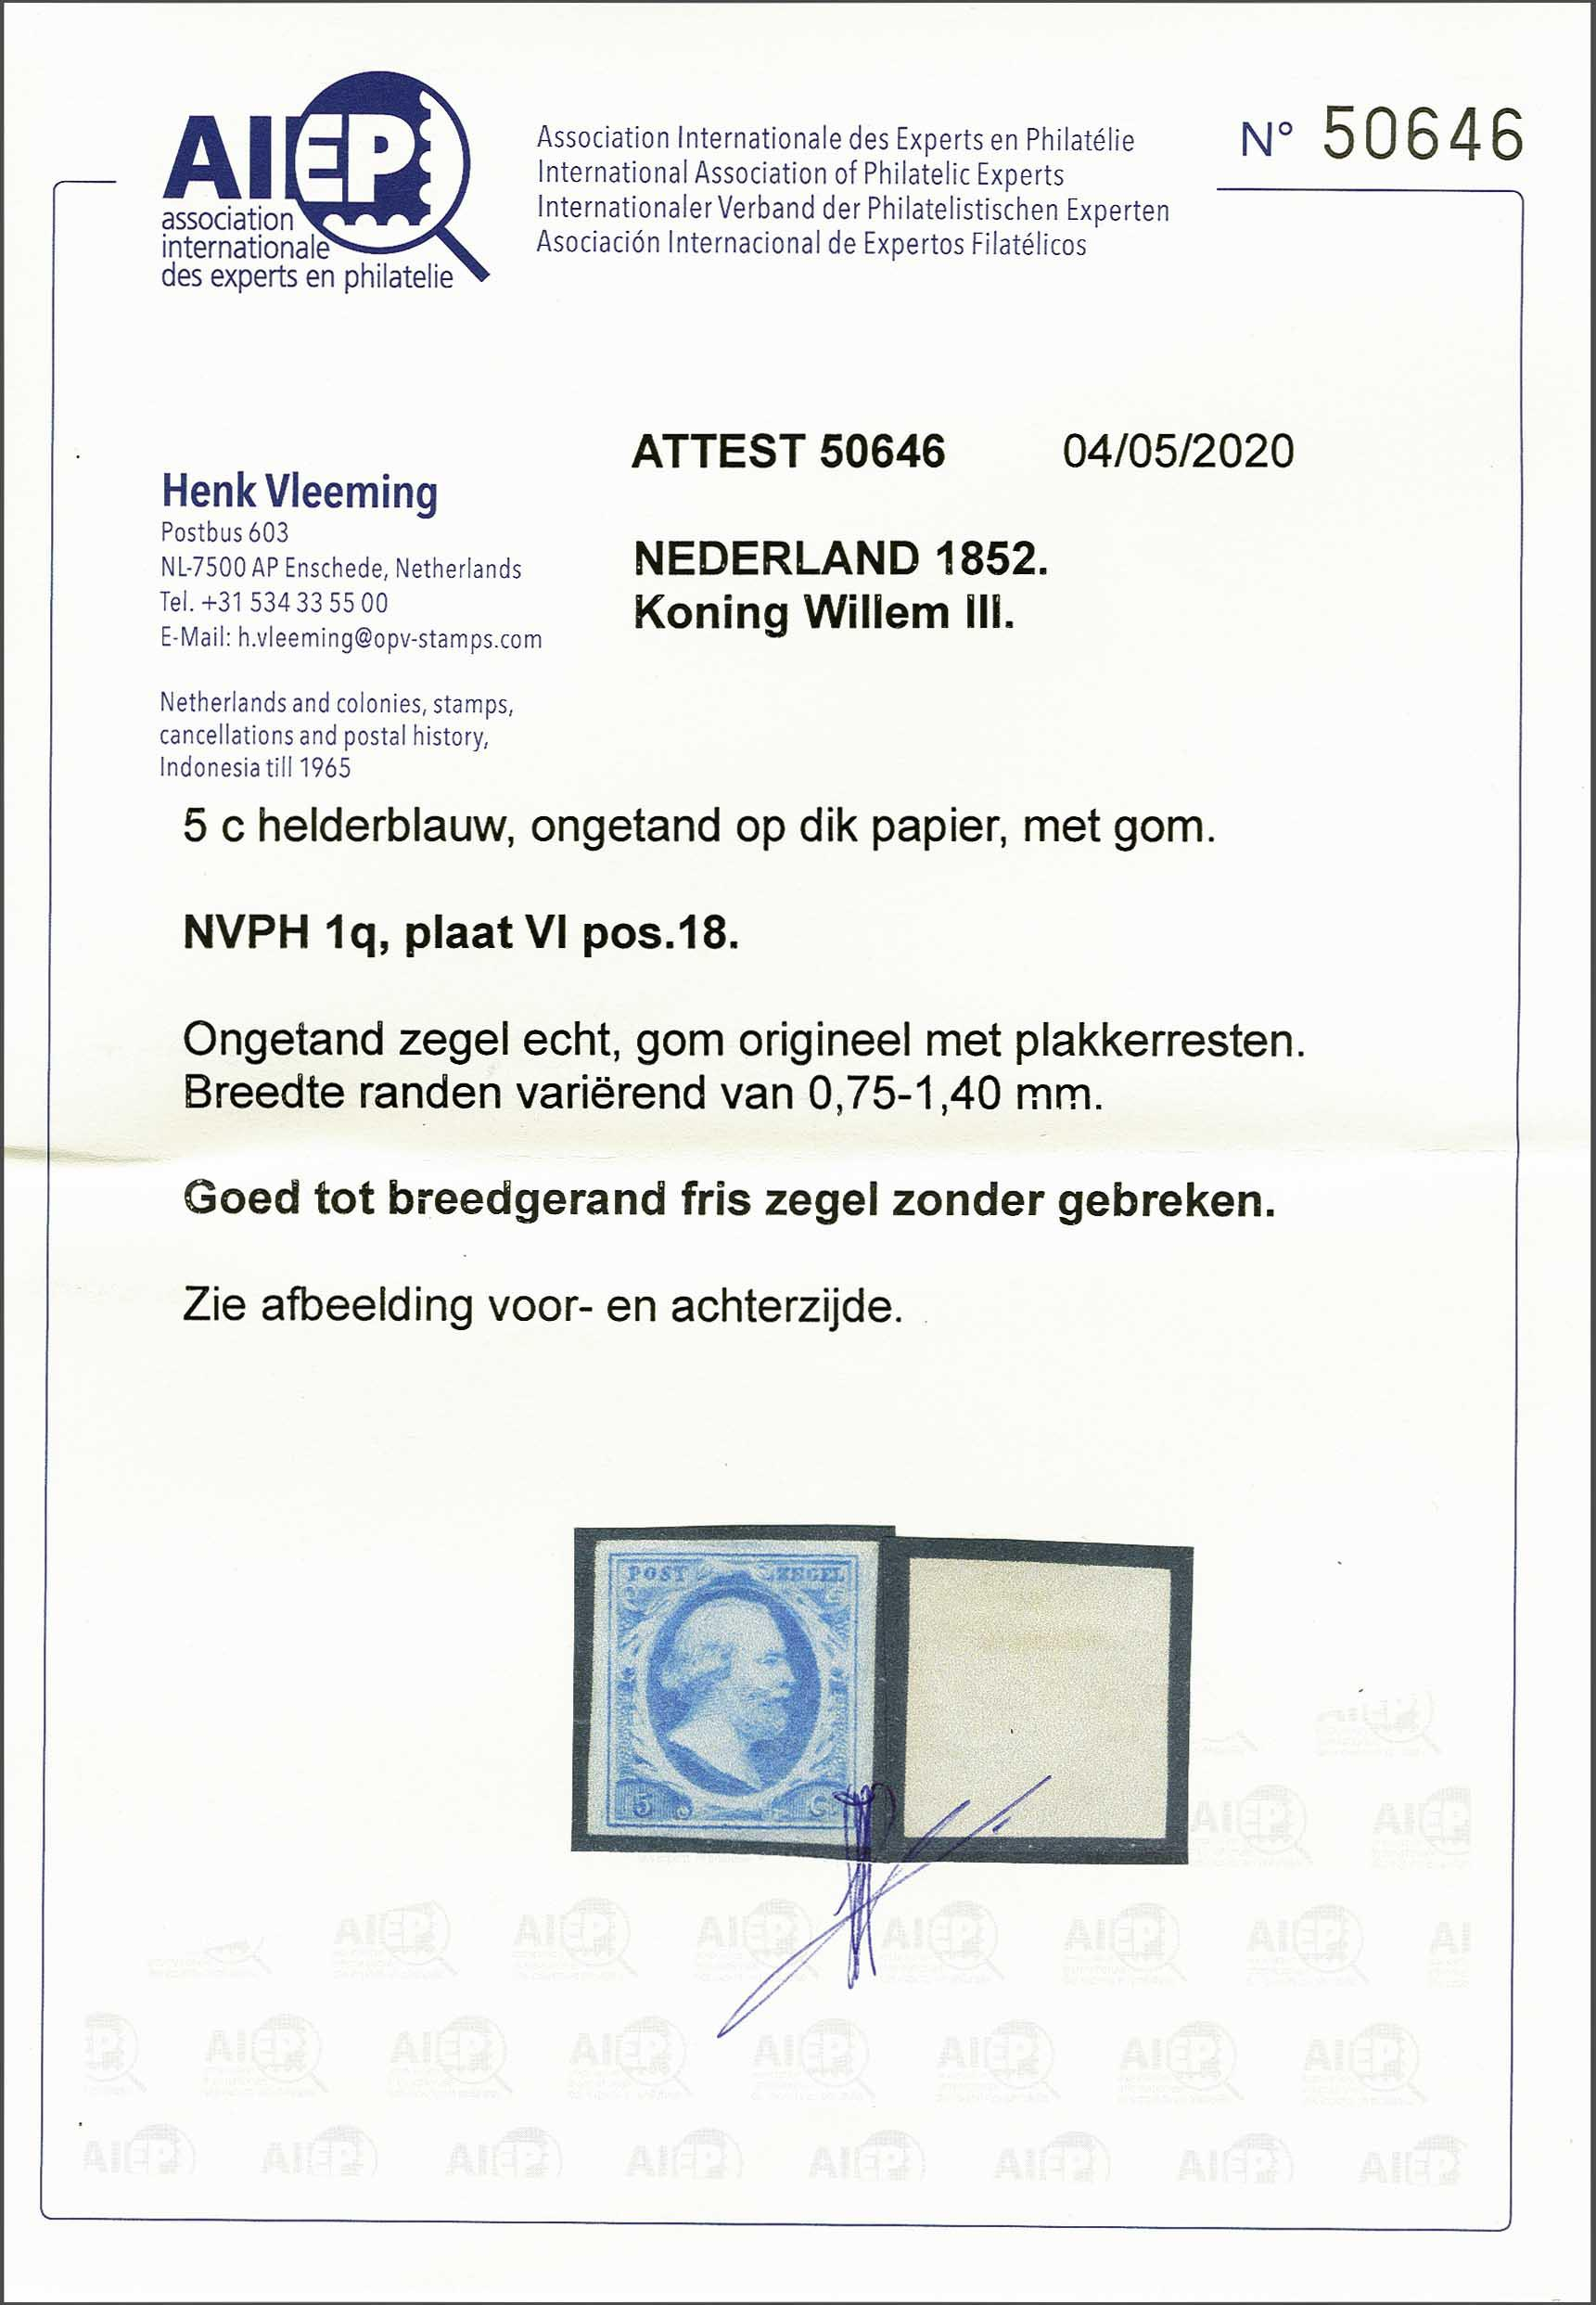 Lot 1712 - Netherlands and former colonies NL 1852 King William III -  Corinphila Veilingen Auction 245-246 Day 3 - Netherlands and former colonies - Single lots, Collections and lots, Boxes and literature